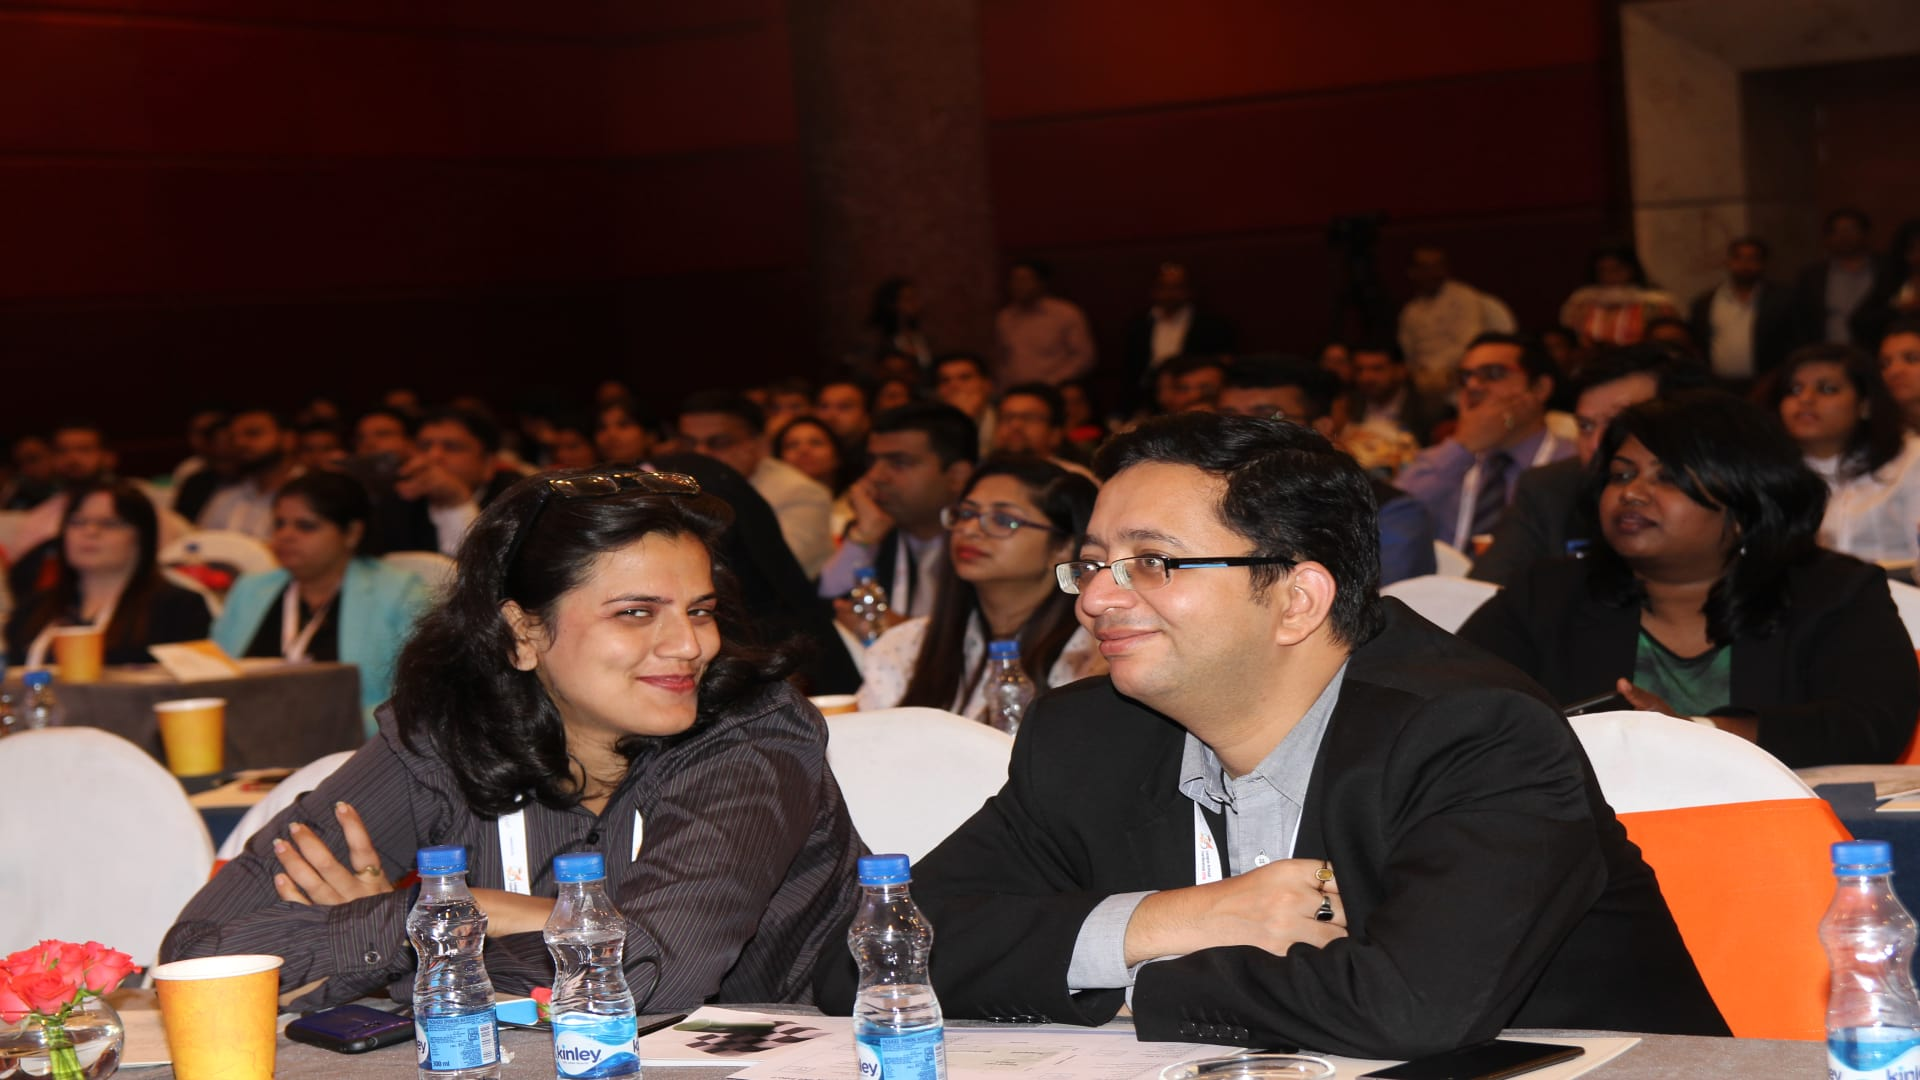 HR Professionals from L&D space enjoyed every moment of enriching and insightful sessions